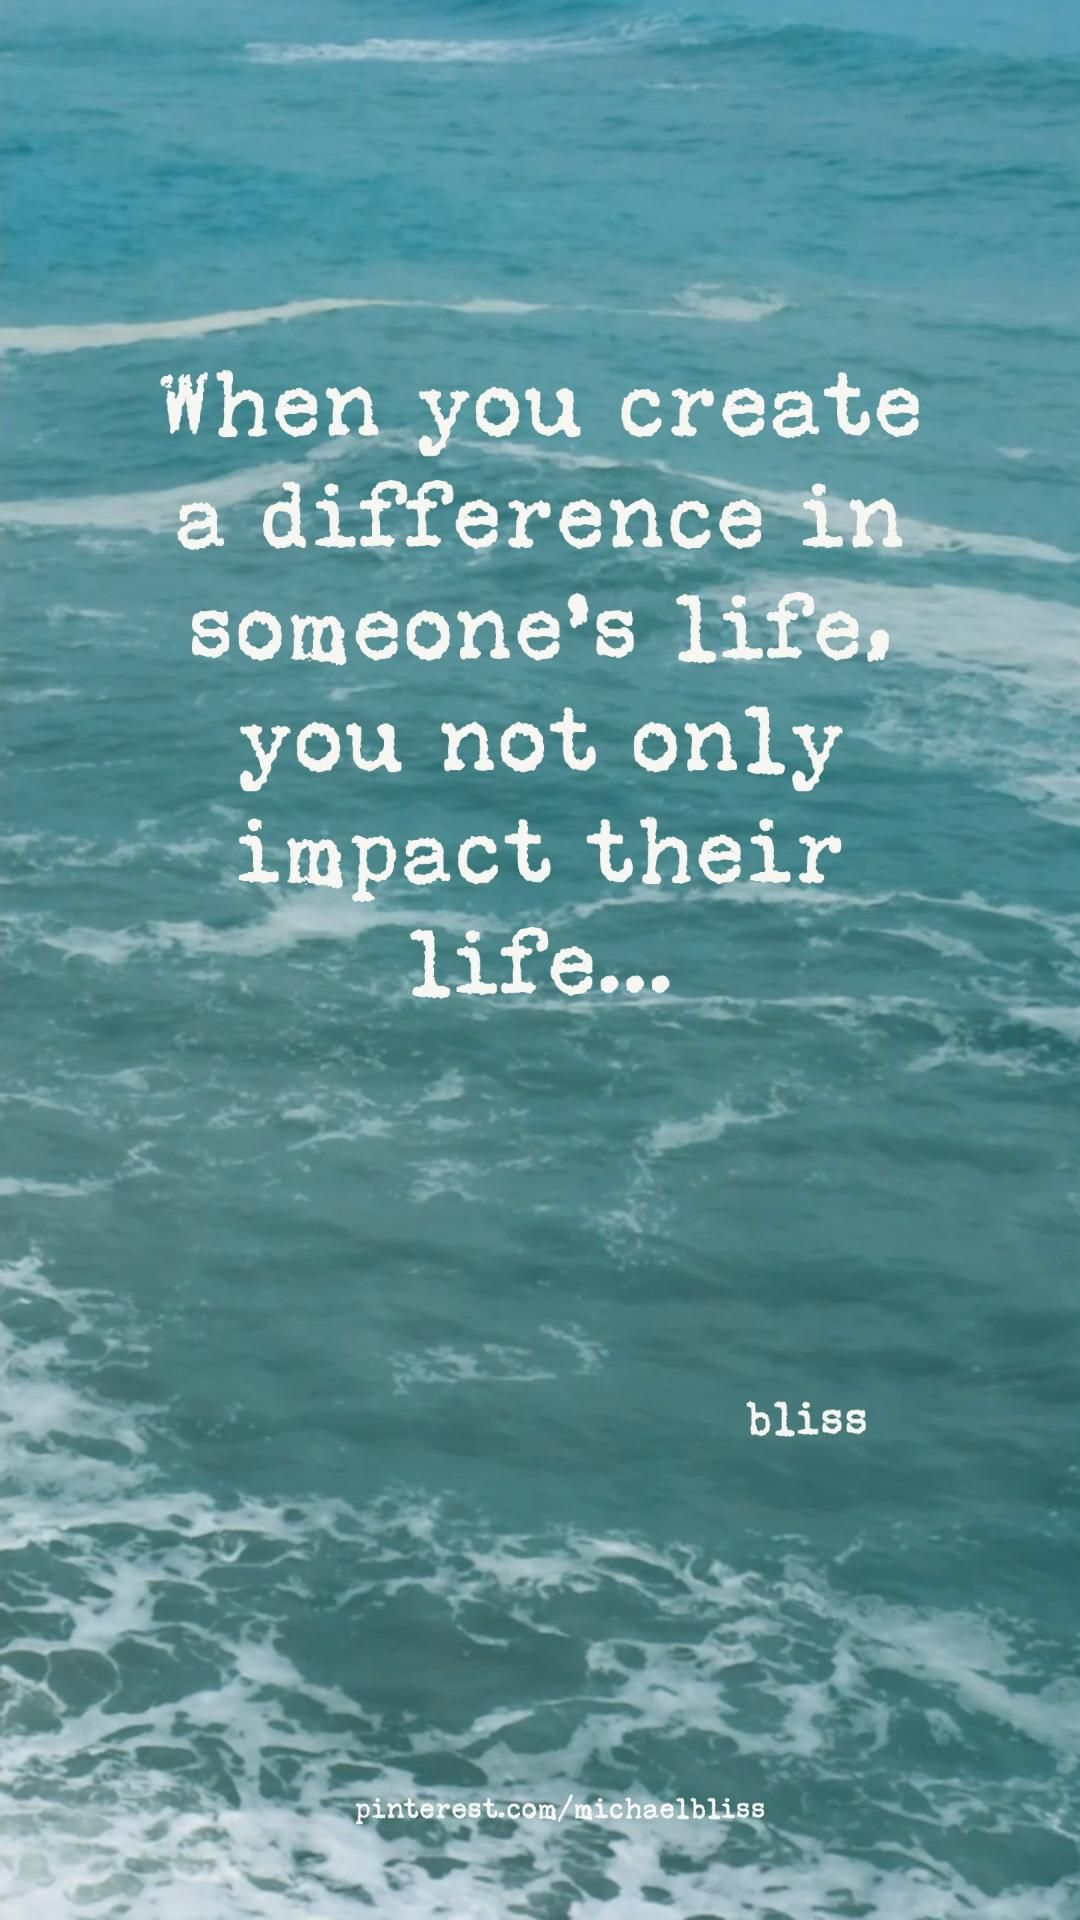 When you create a difference in someone's life you impact everyone influenced by them